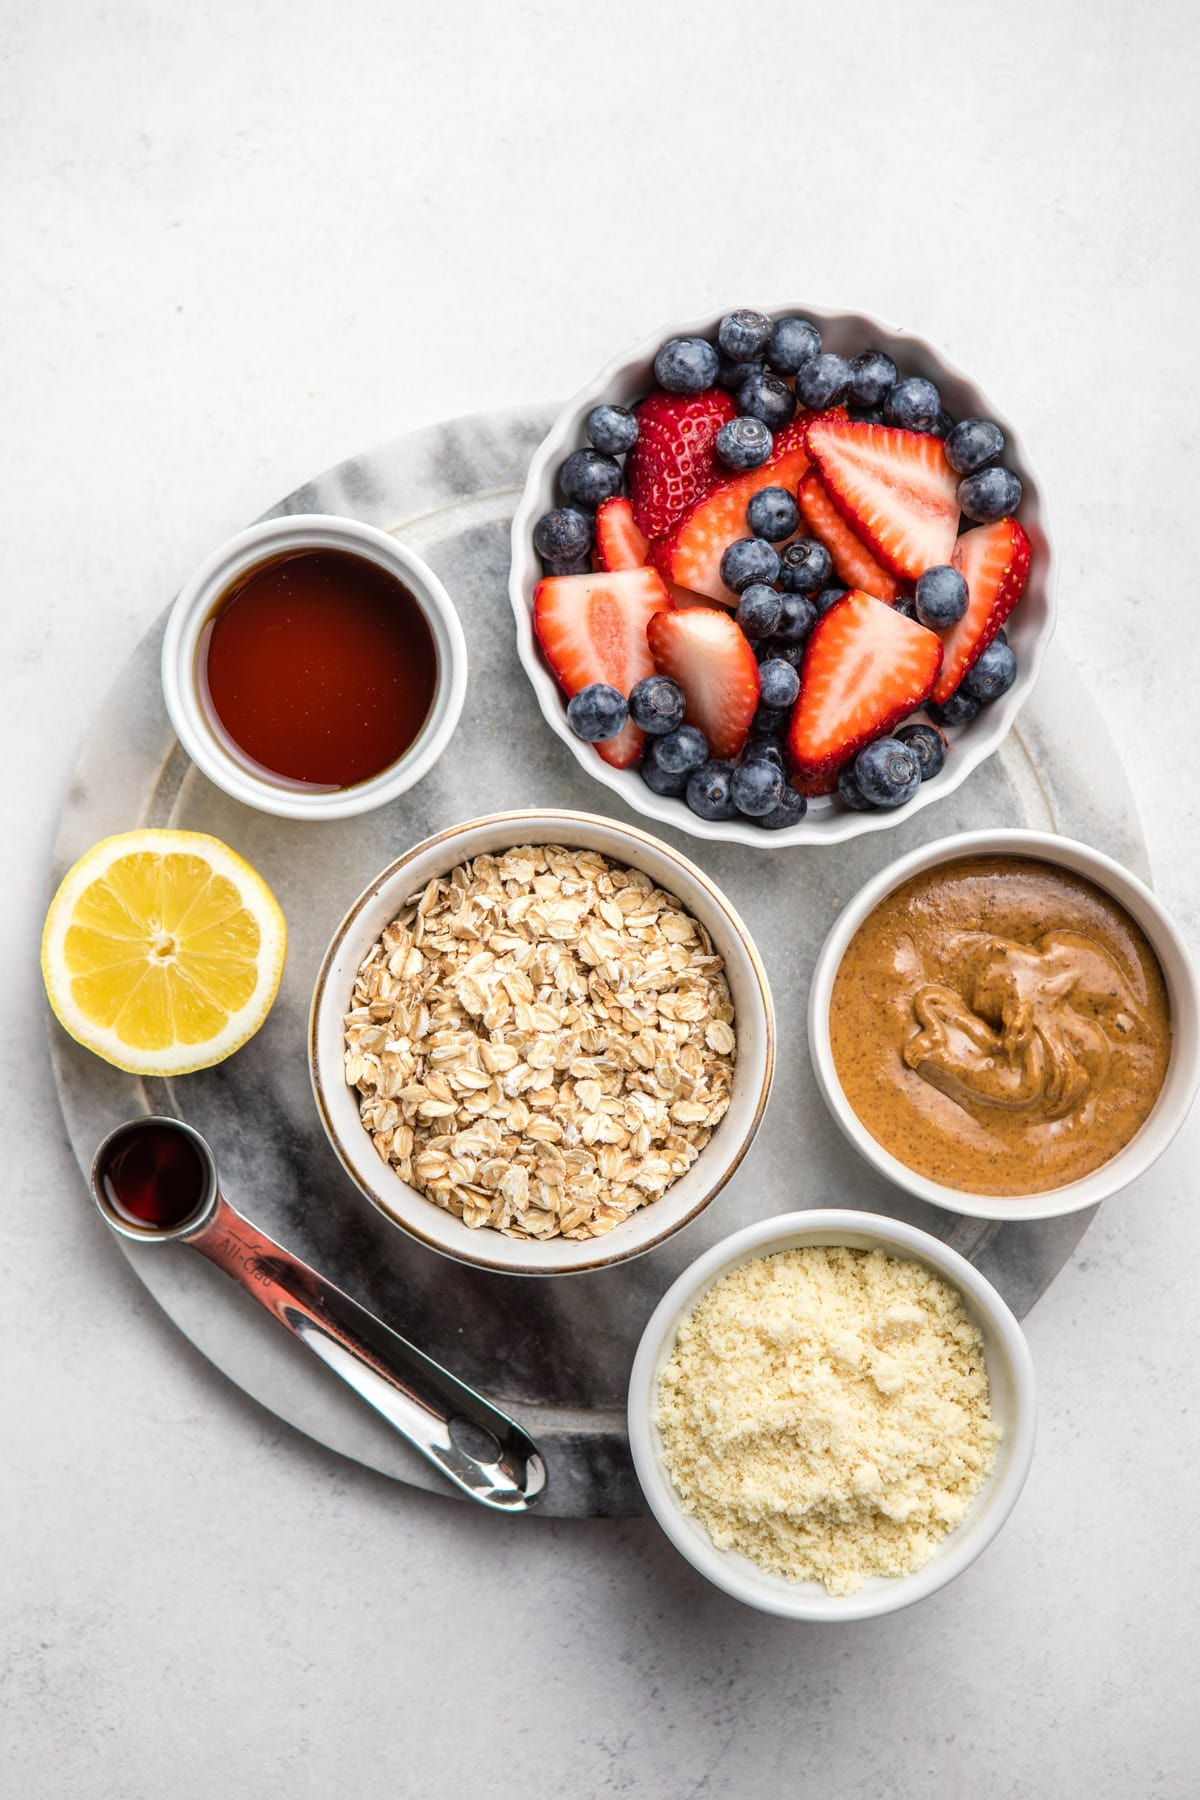 ingredients for berry crumble on round marble cutting board